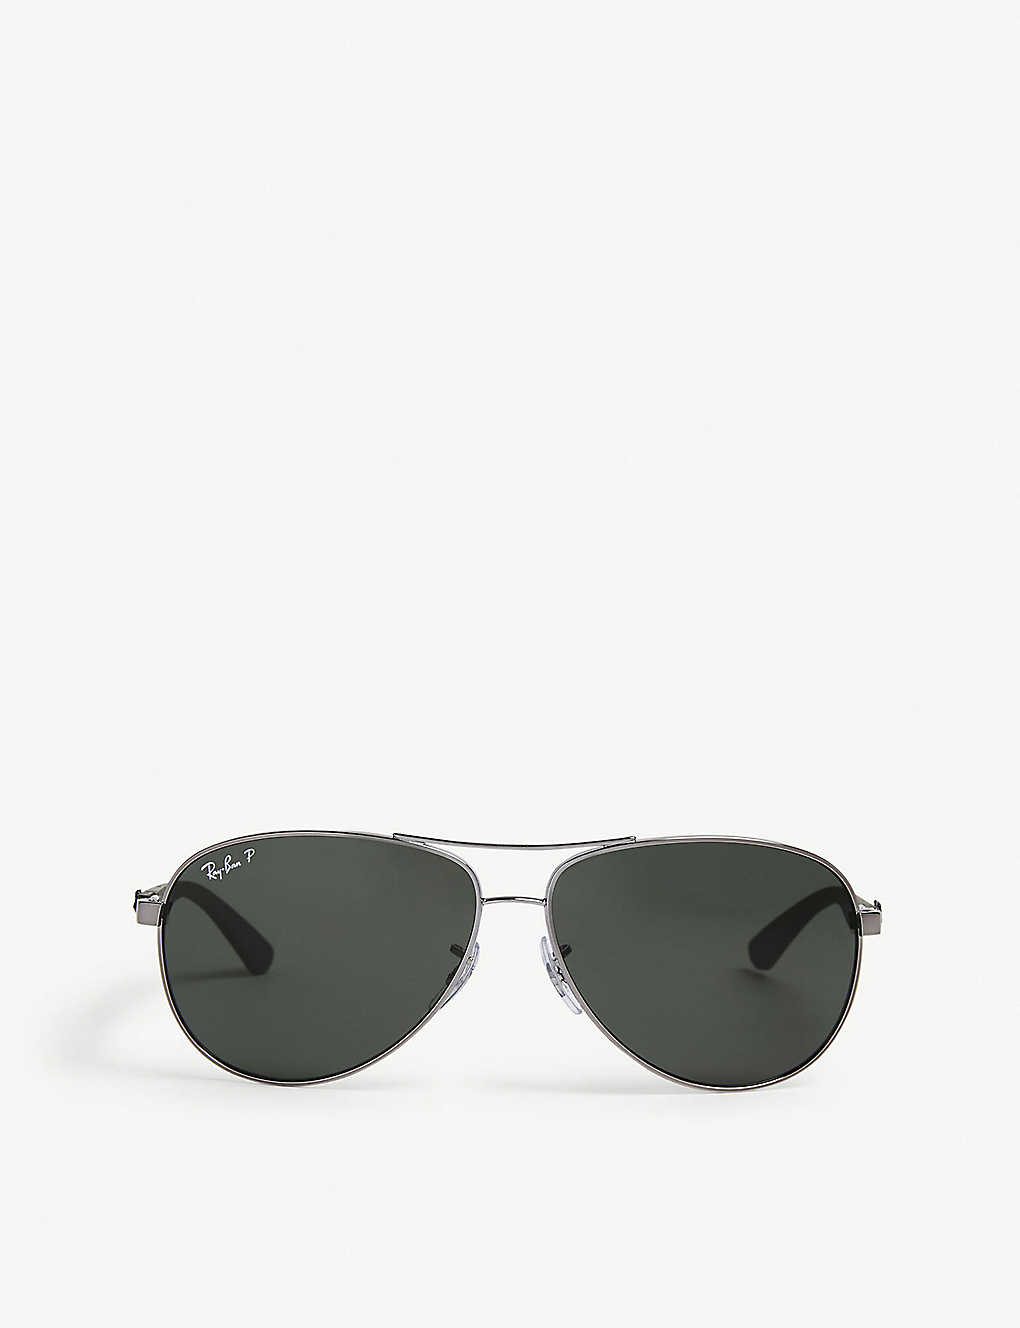 7a662957adb RAY-BAN - RB8313 Tech aviator sunglasses